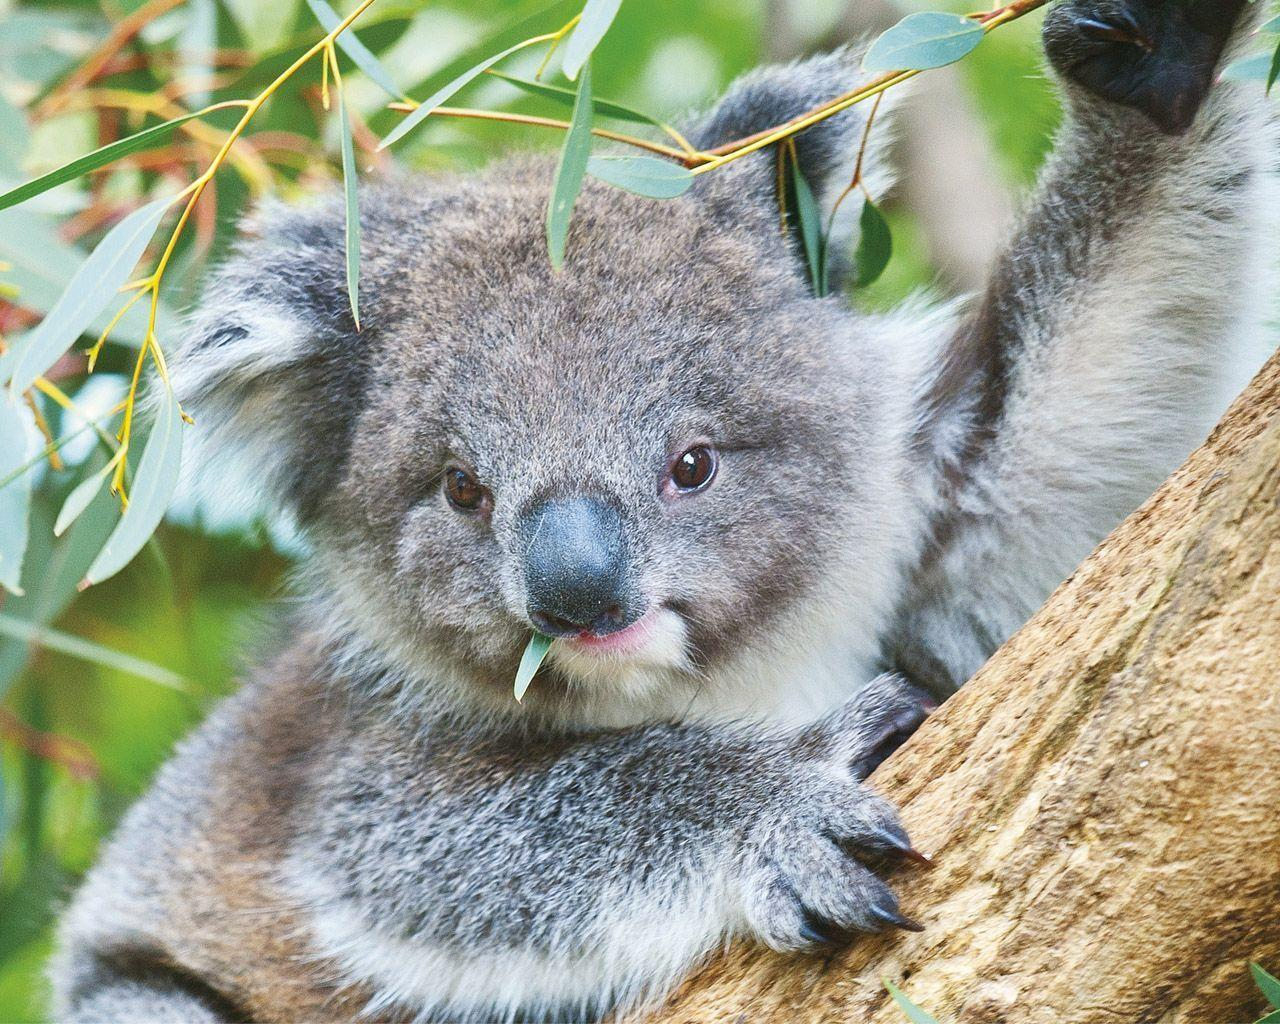 Koala - Australia Wallpaper (32220219) - Fanpop